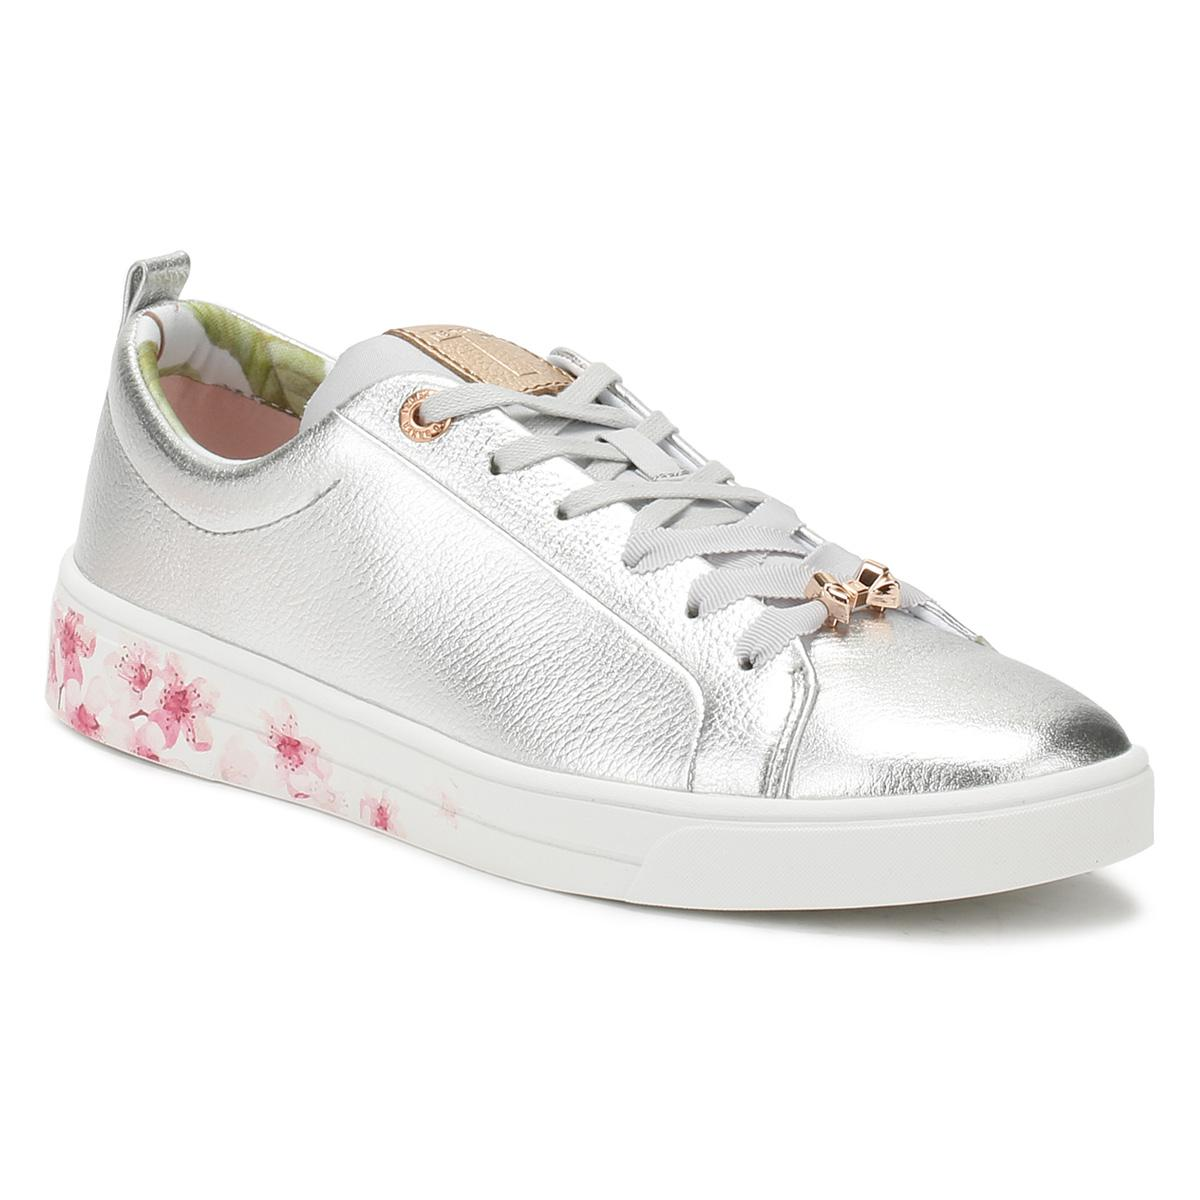 4a62ce143dfd92 Ted Baker Womens Silver Kelleip Trainers in Metallic - Lyst